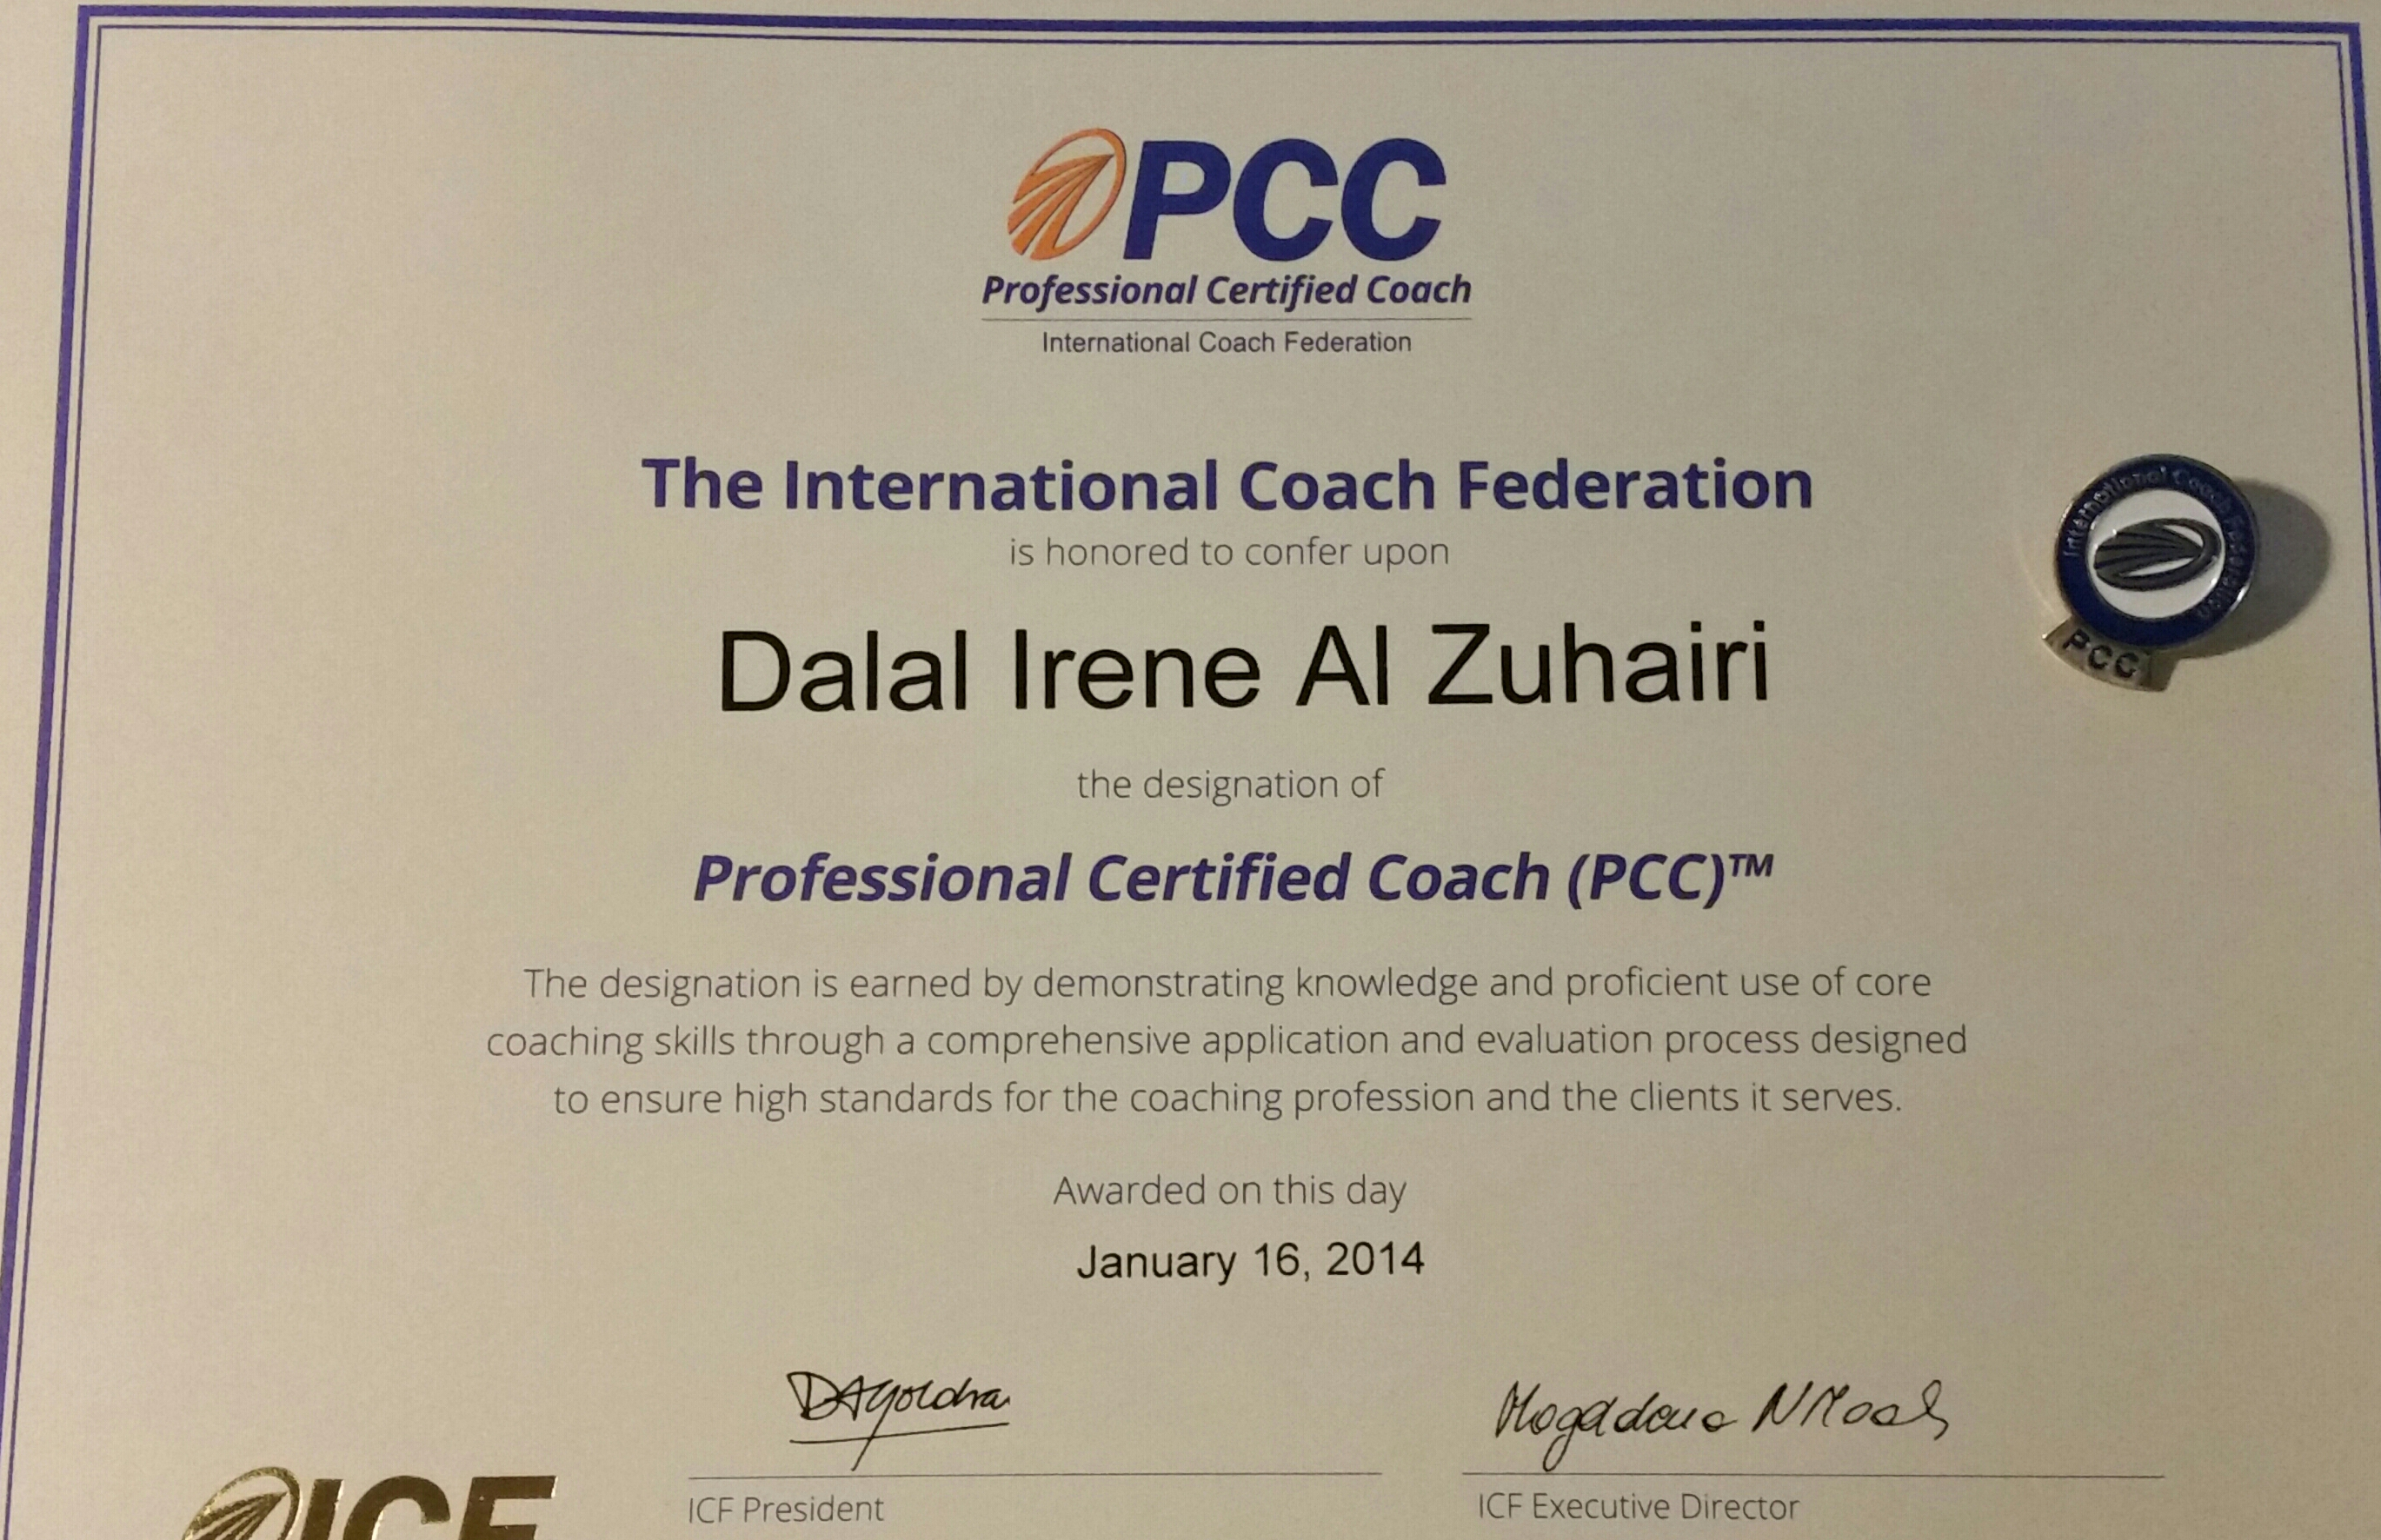 professional_certified_coach_international_coach_federation_Dalal_Irene_Al_Zuhairi_coachingadvanced.com_PCC-